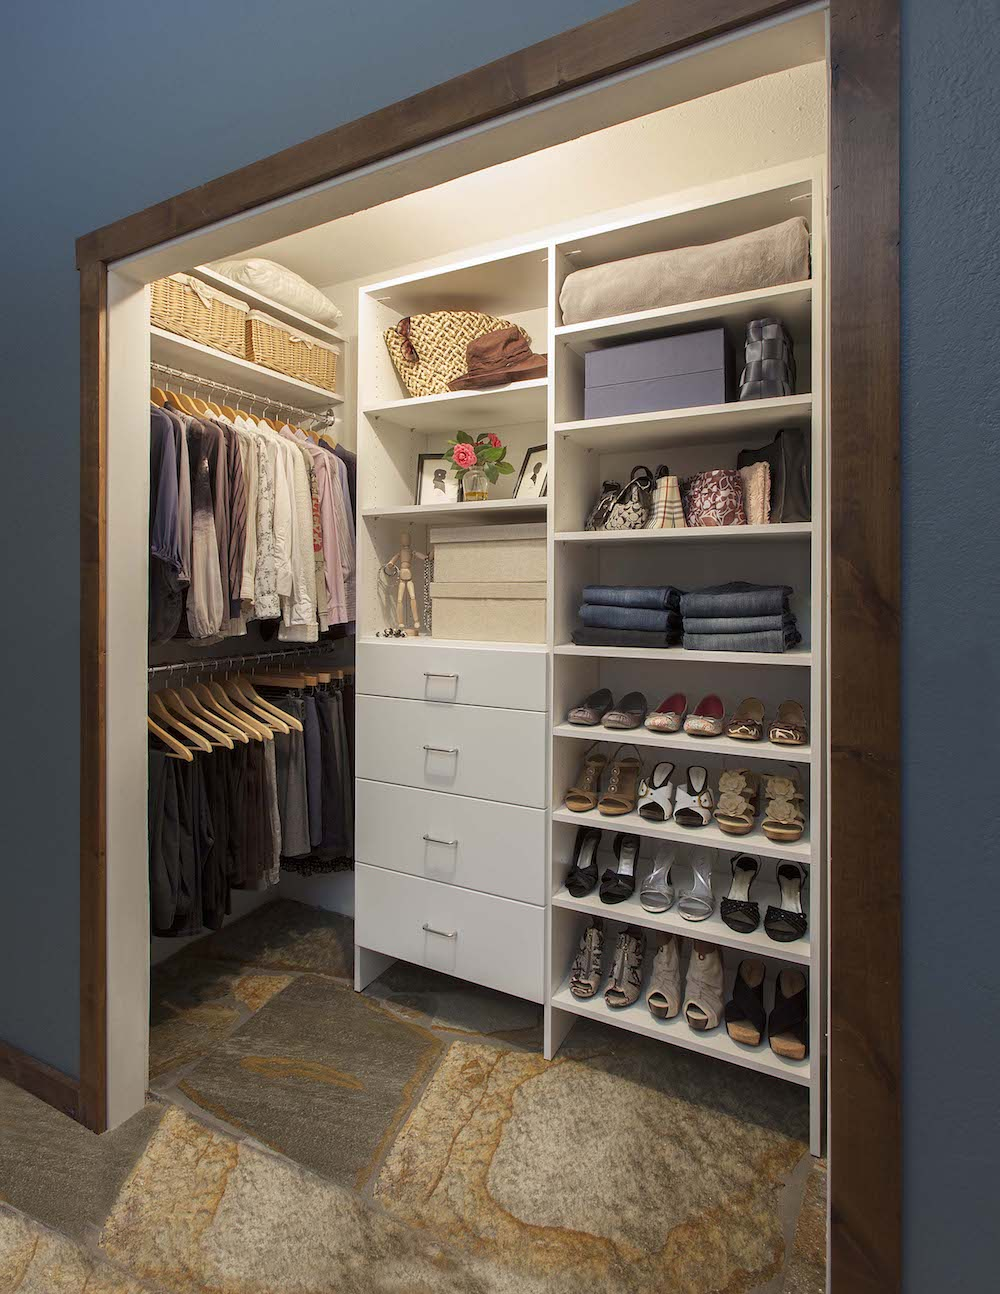 How Much Is A California Closet | California Closets Media Center | California Closets Nyc